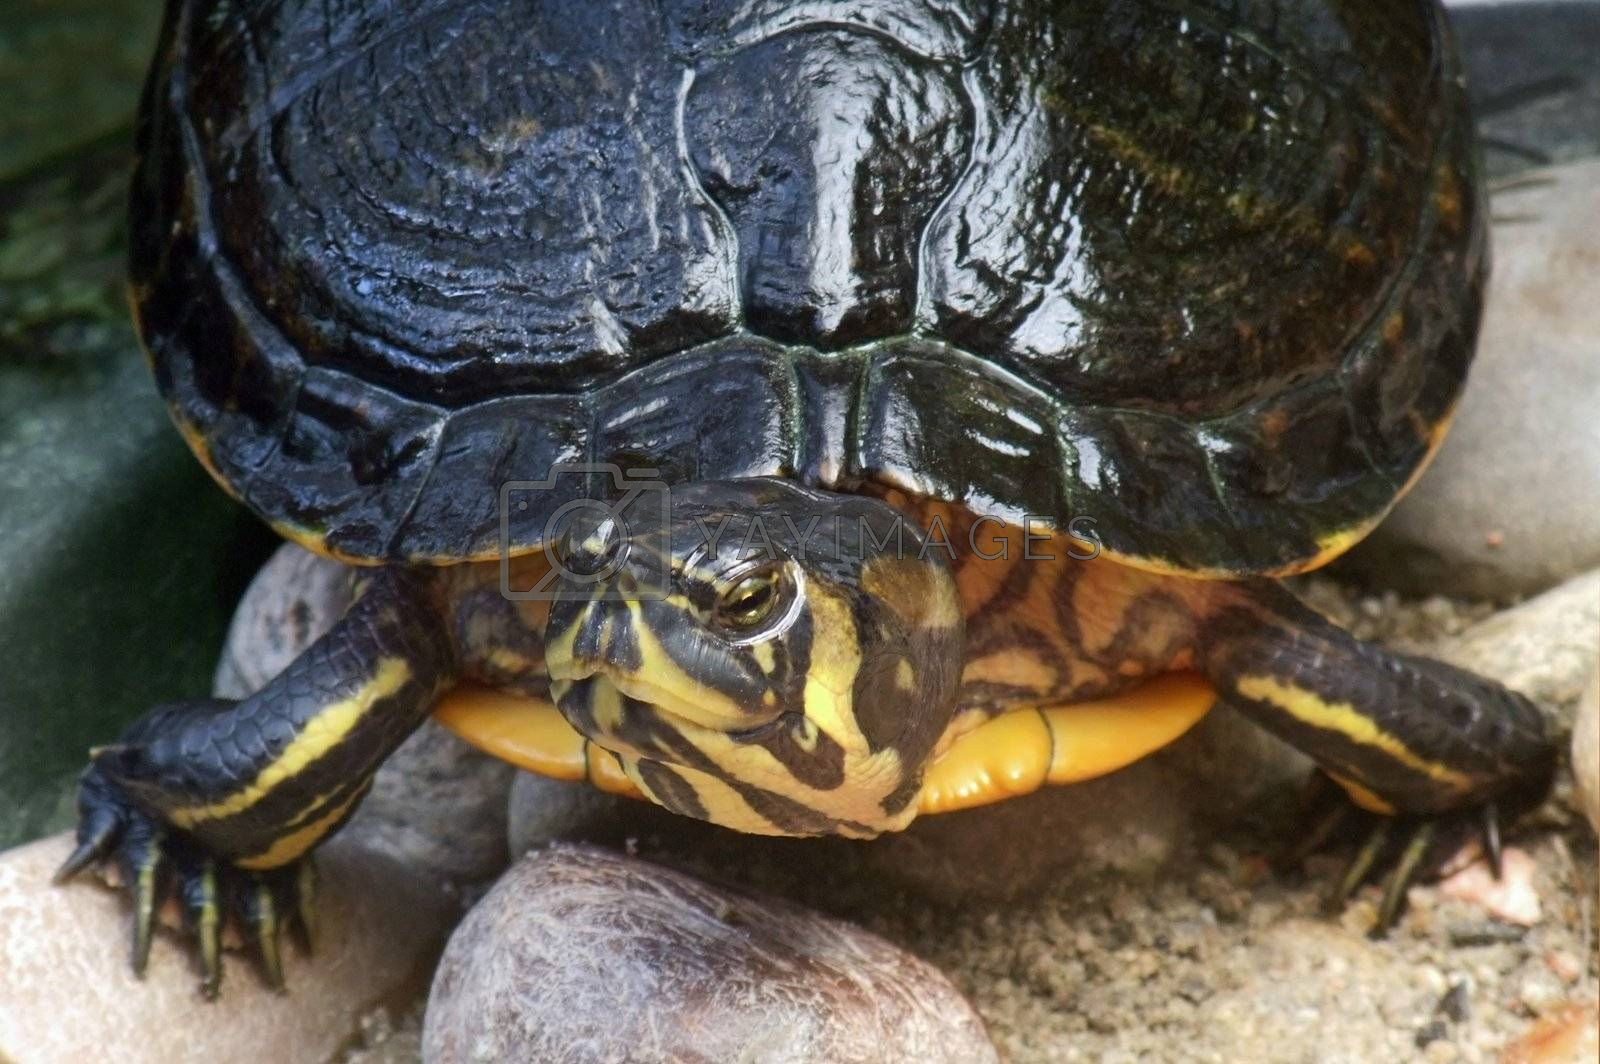 high angle frontal detail of a freshwater turtle in stony ambiance